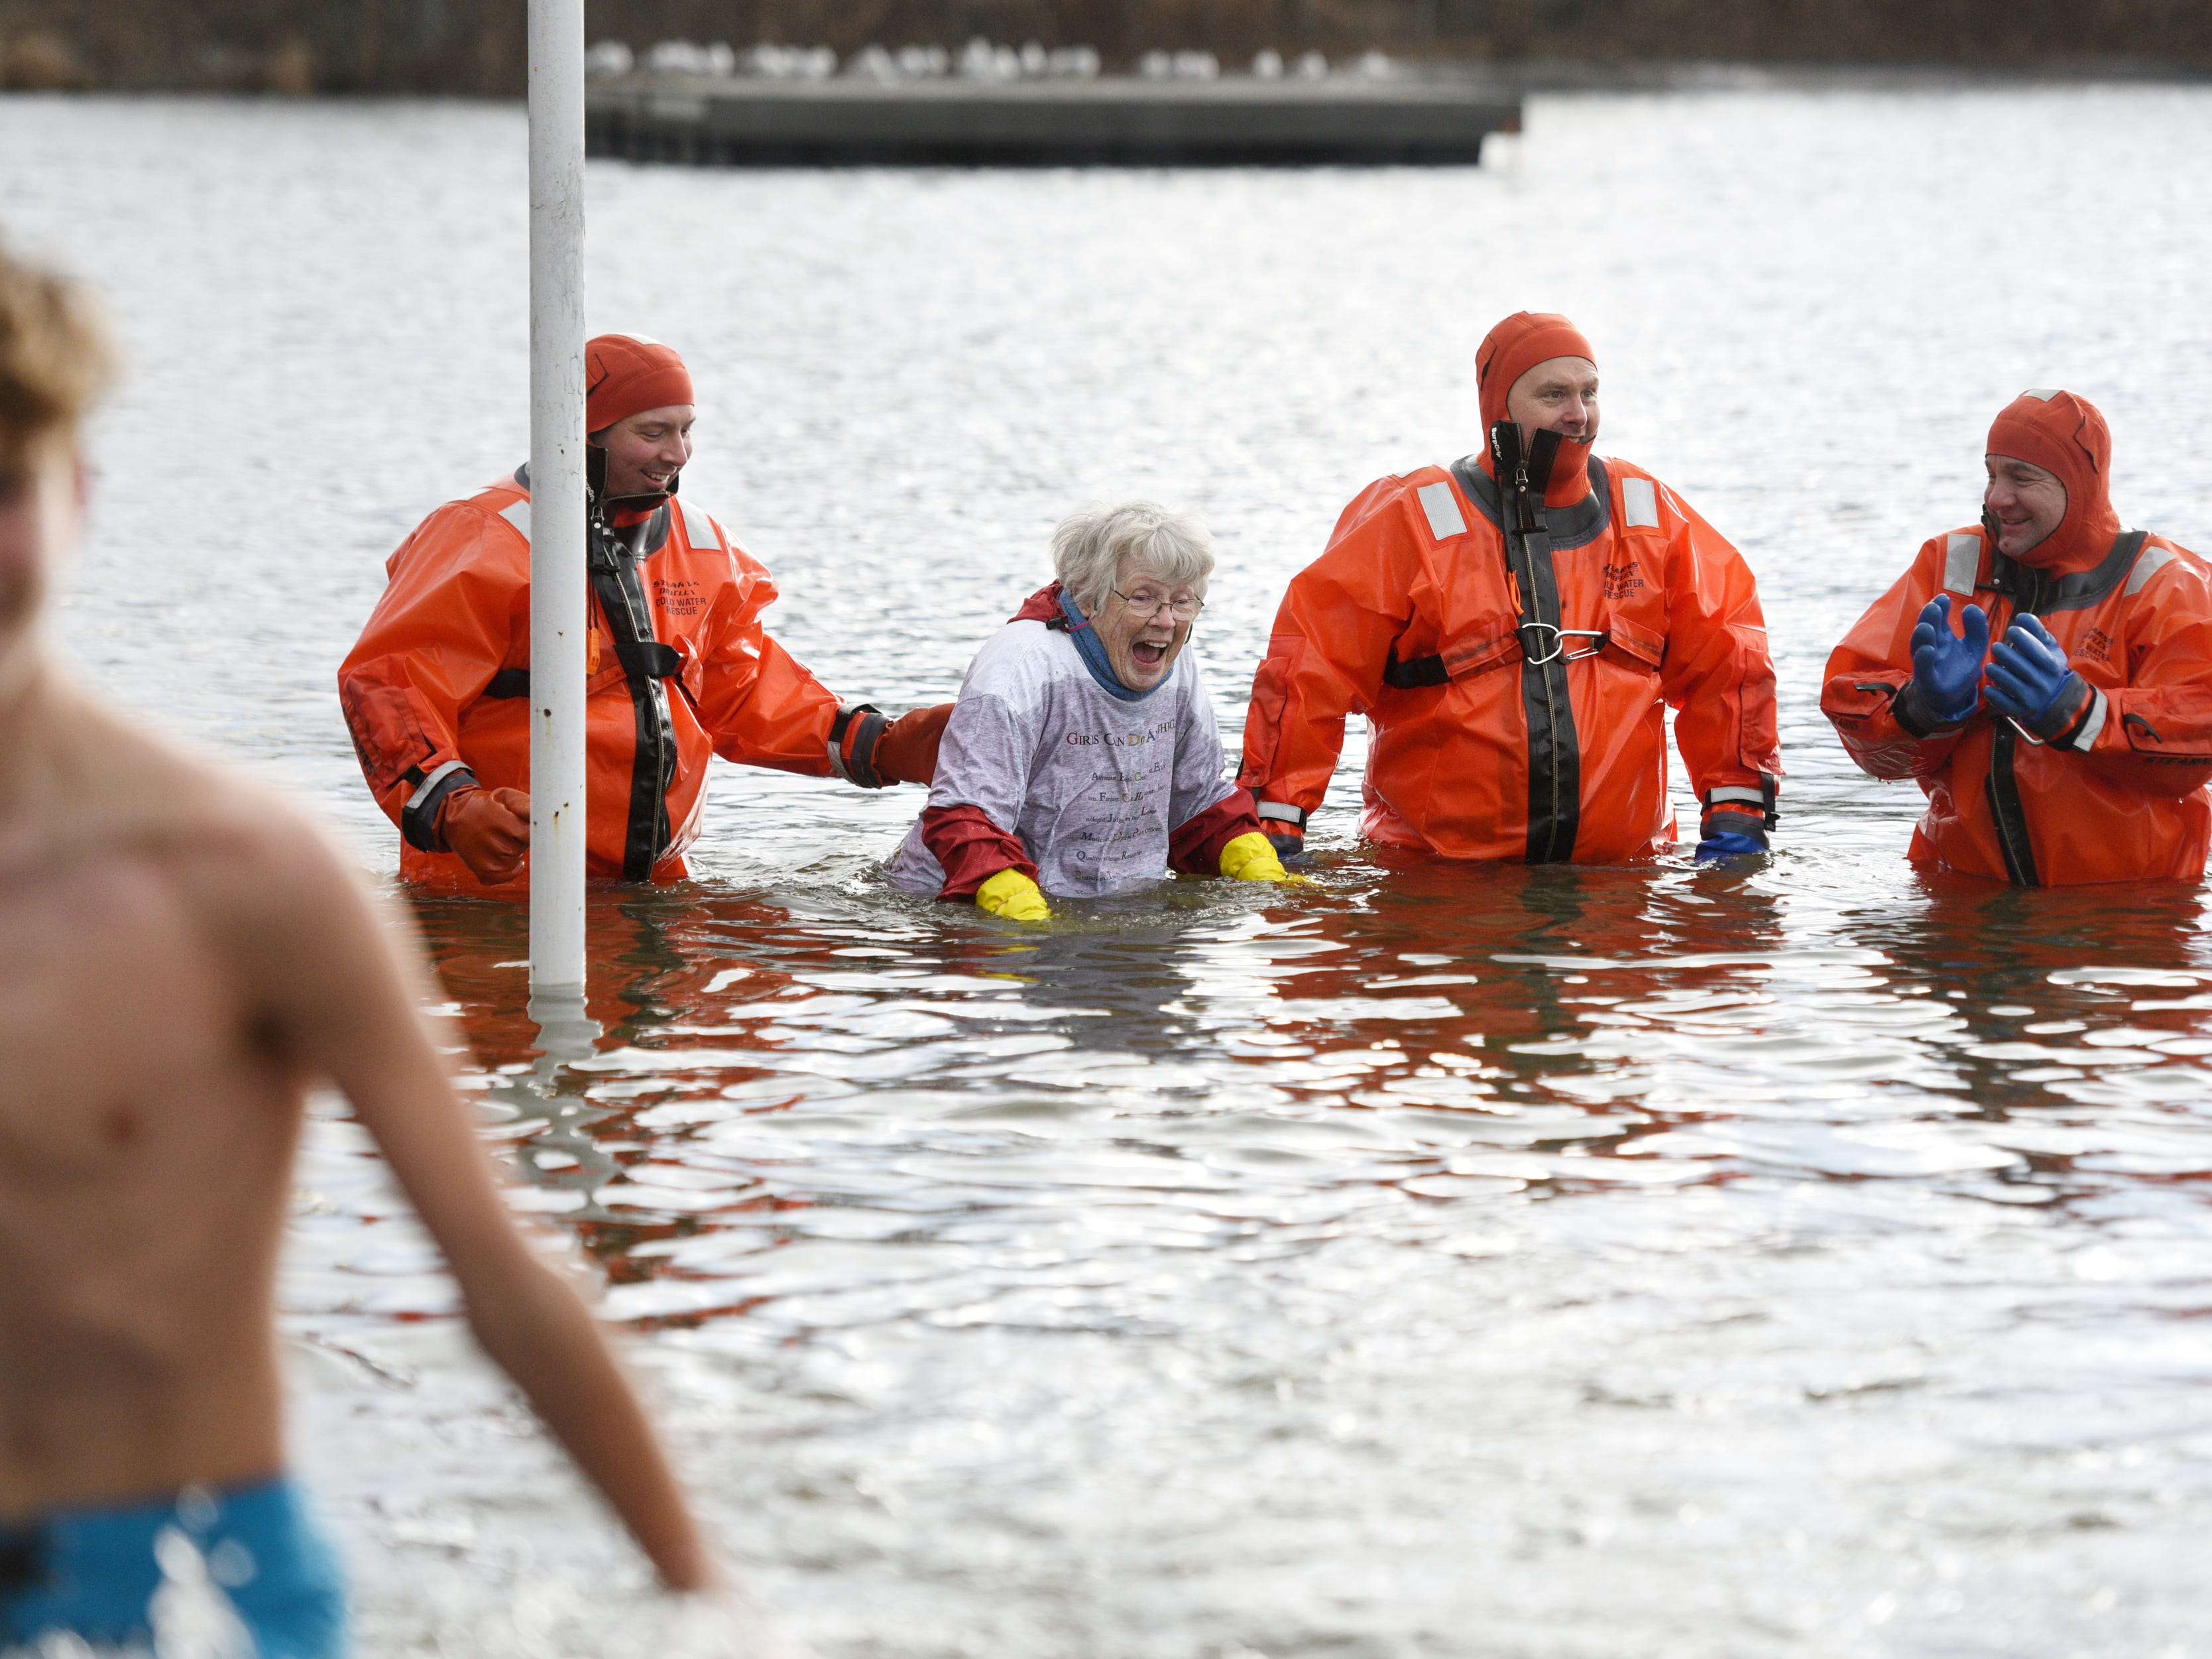 Kay Collins, 82, the oldest participant in the 4th annual Pequannock Polar Plunge, went the deepest into the lake at Pequannock Valley Park on Sunday, January 6, 2019. Collins circled the pole before dunking three times into the lake, where members of Pequannock Fire Department Engine Company One cheered her on.